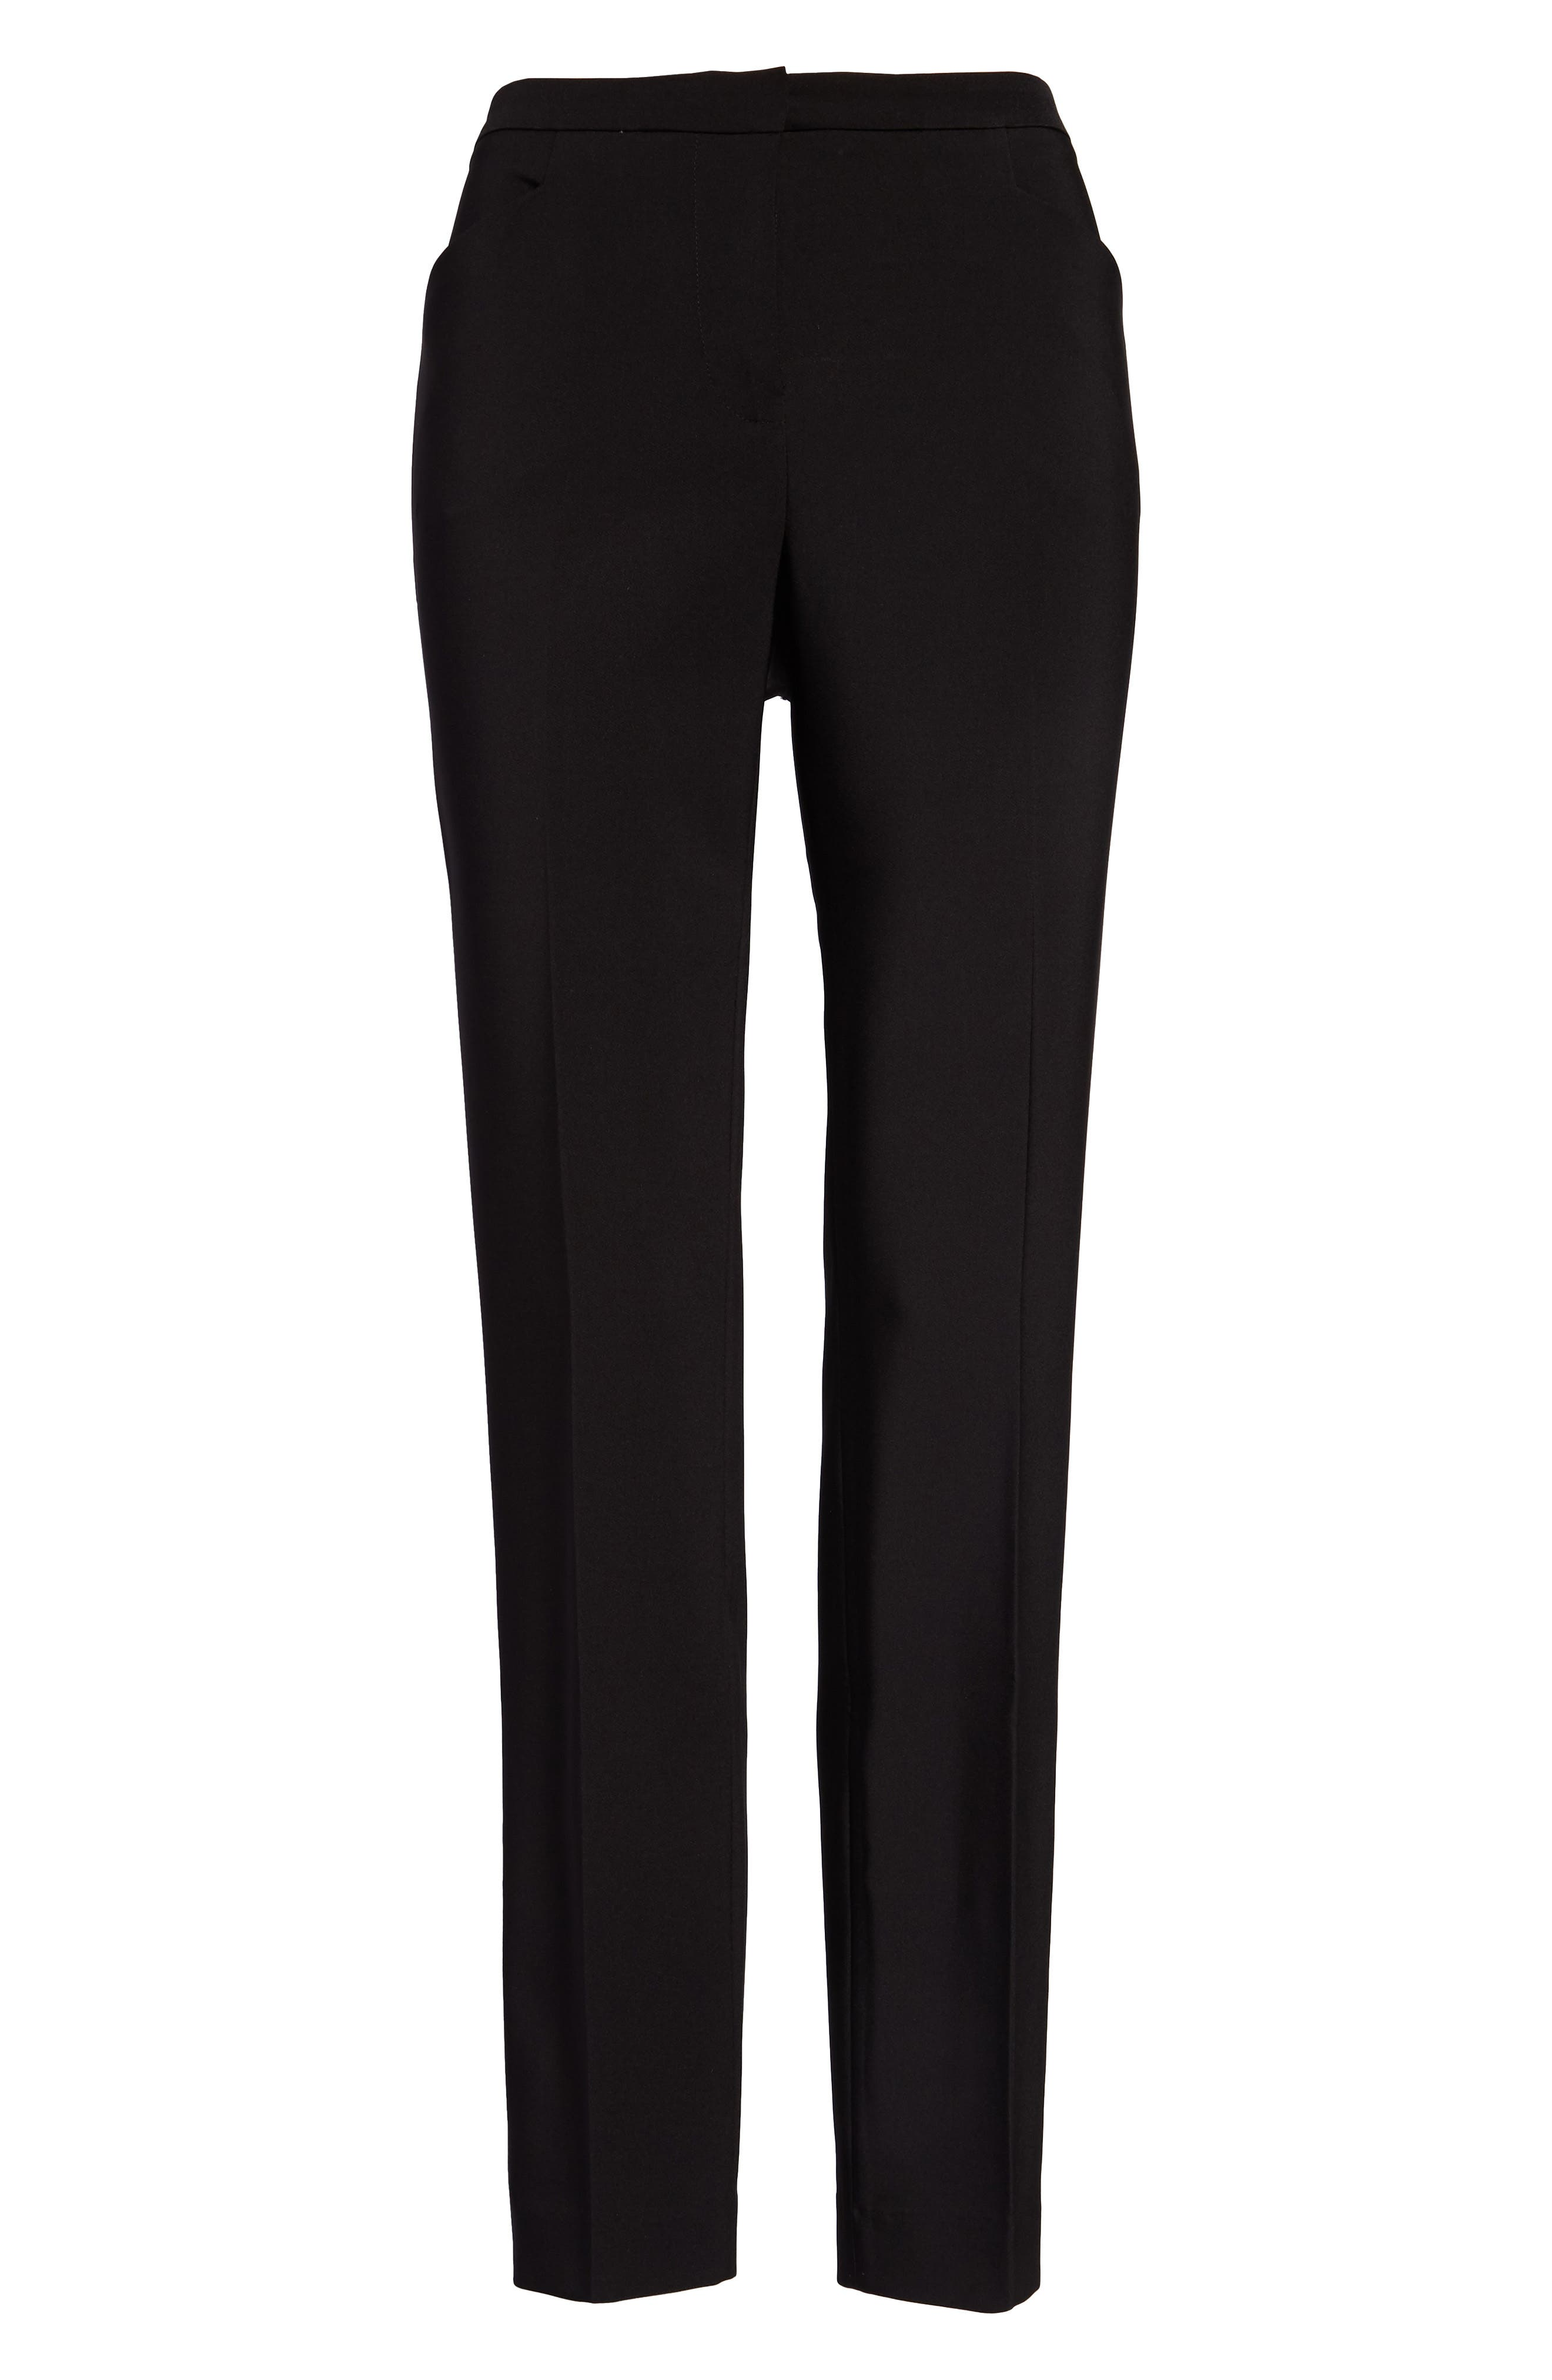 VINCE CAMUTO,                             Stretch Twill Ankle Pants,                             Alternate thumbnail 3, color,                             RICH BLACK